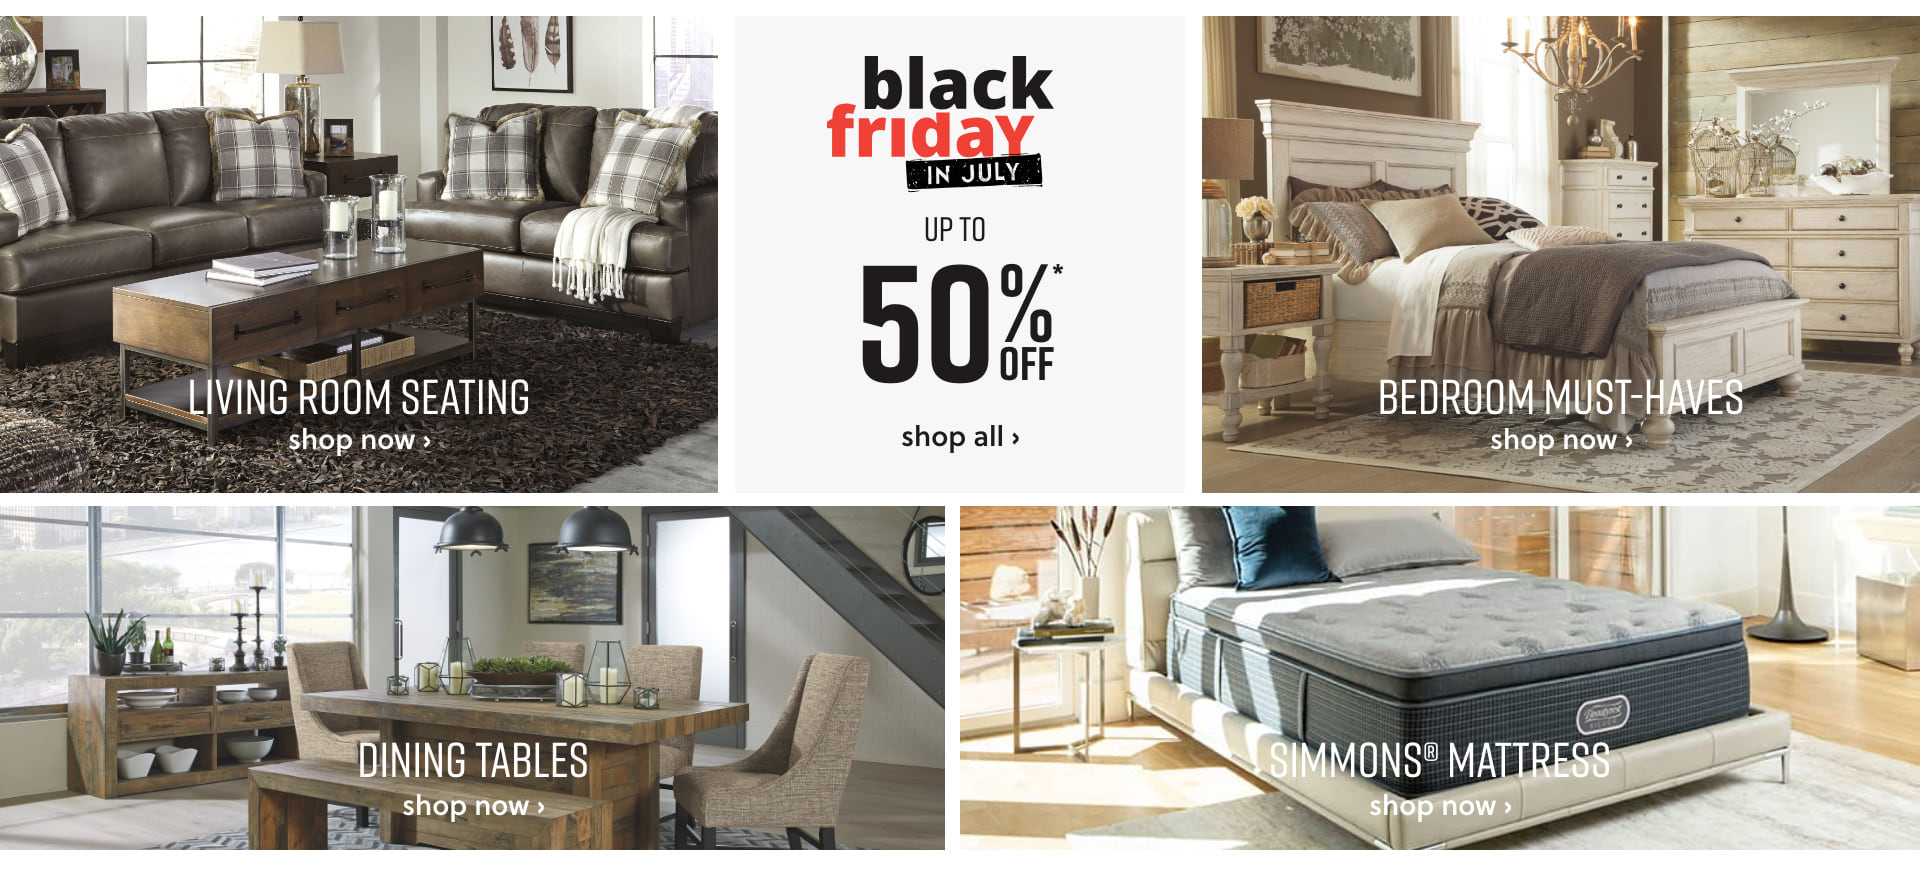 Shop Ashley Furniture HomeStore Black Friday in July up to 50% off*